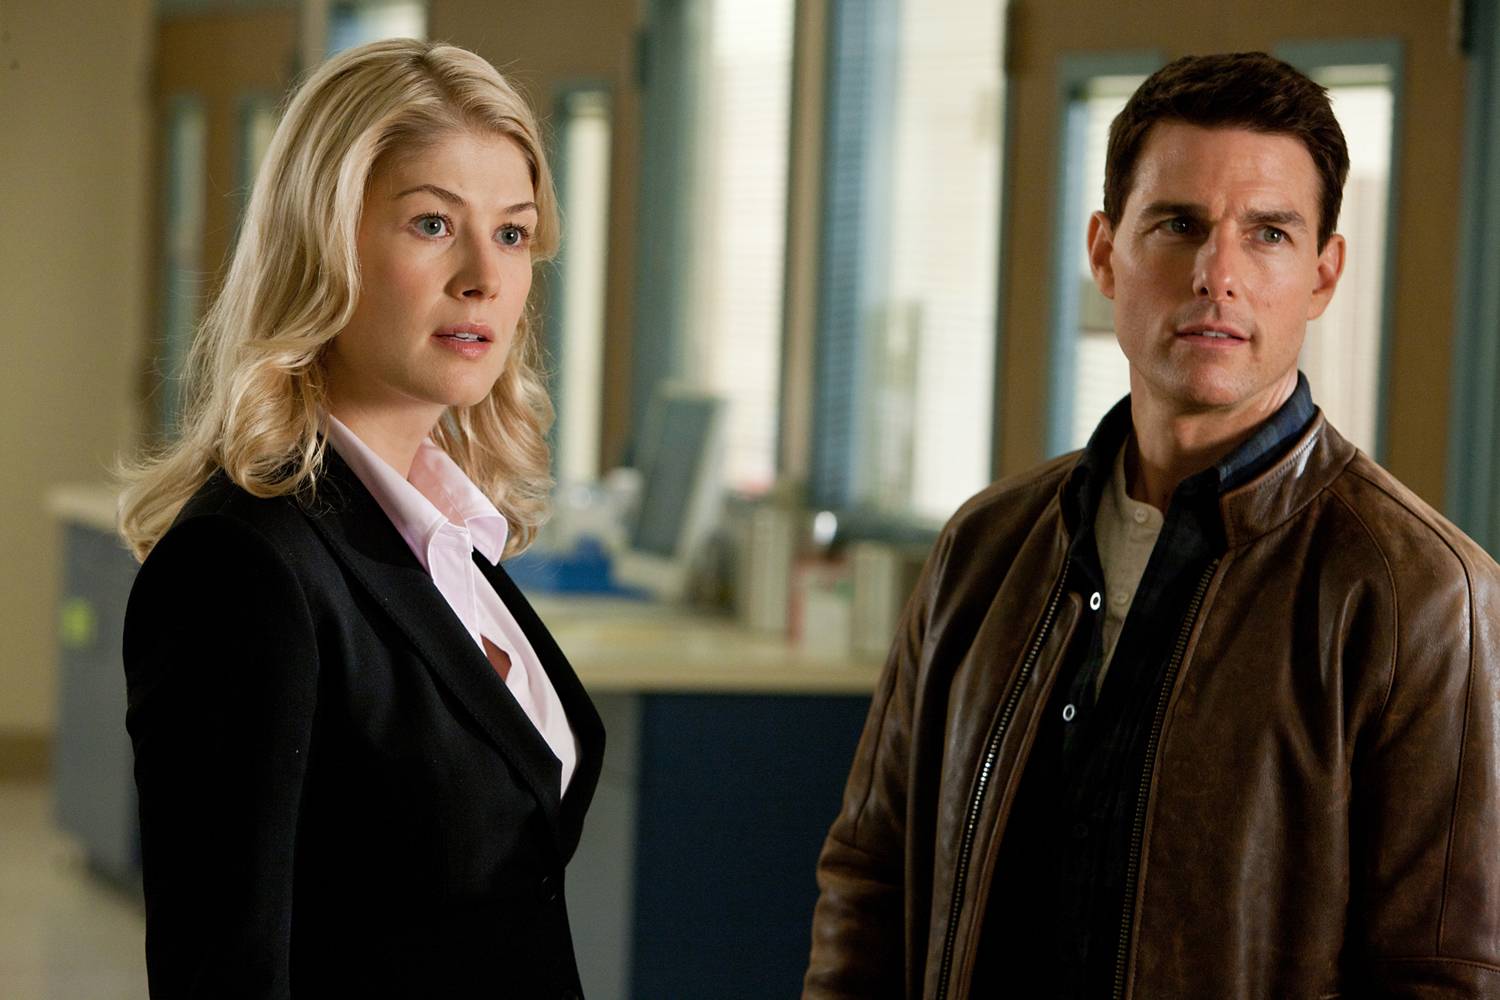 http://thefilmstage.com/wp-content/uploads/2012/12/Jack_reacher14.jpg